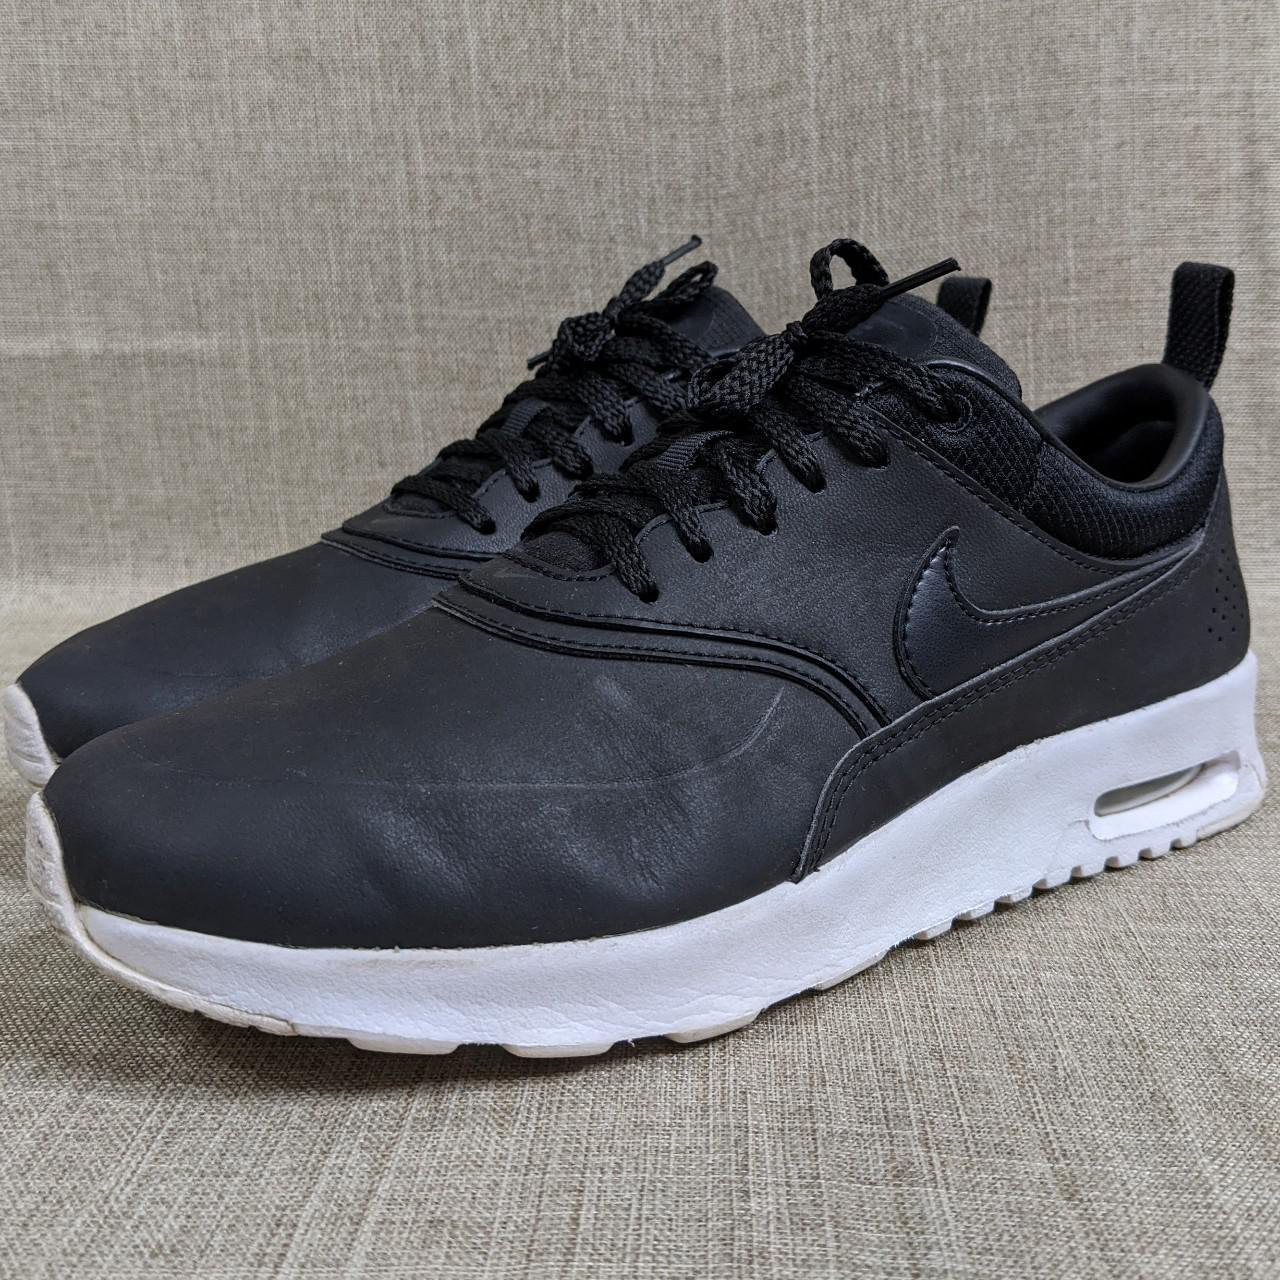 Product Image 1 - Women's Nike Air Max Thea